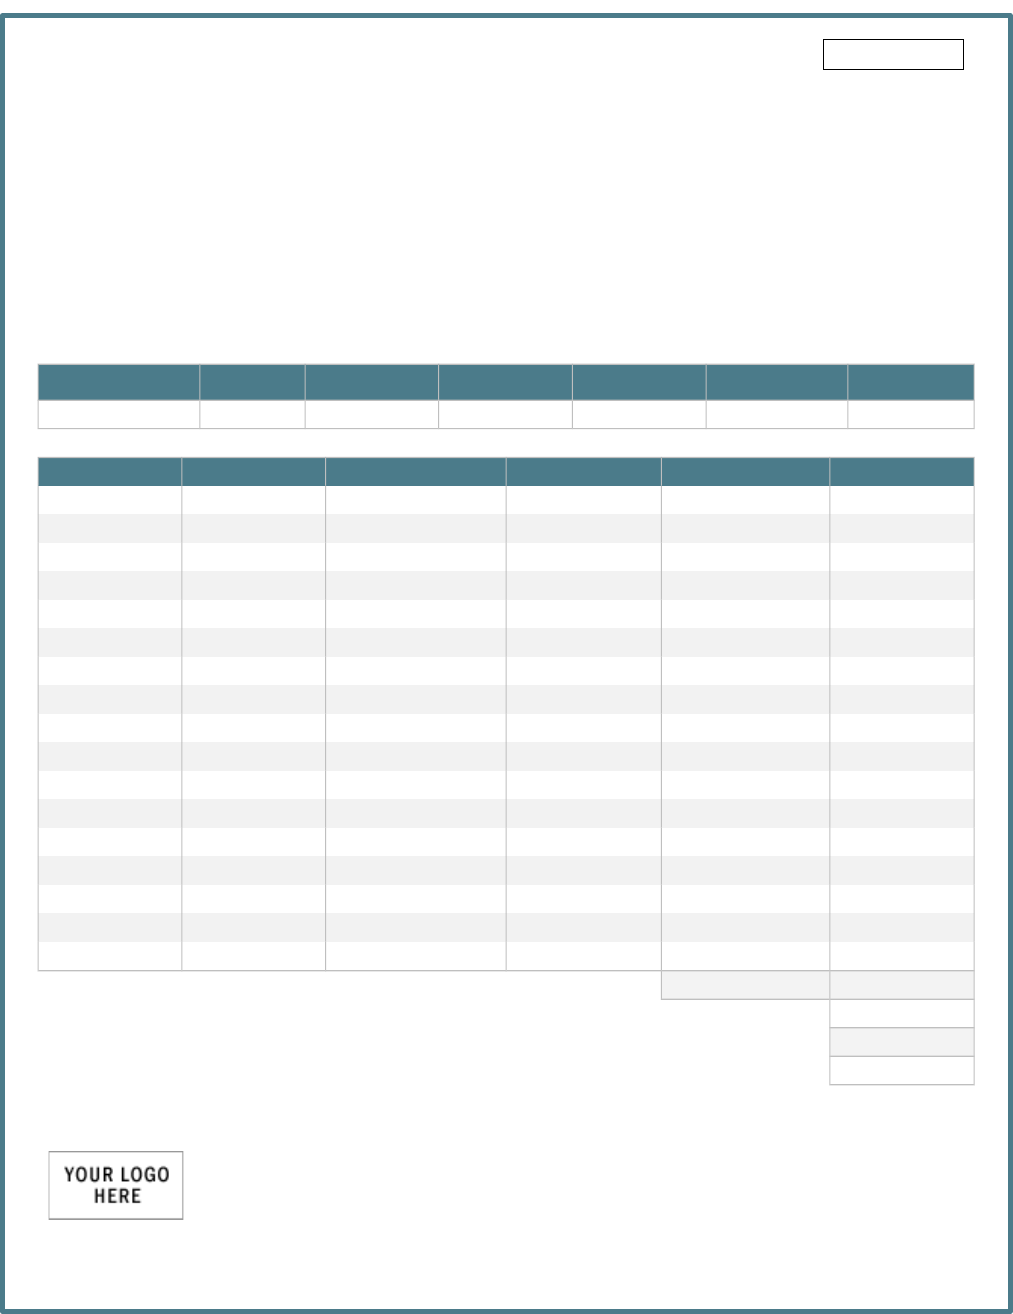 Download General Invoice Template For Free TidyForm - General invoice template